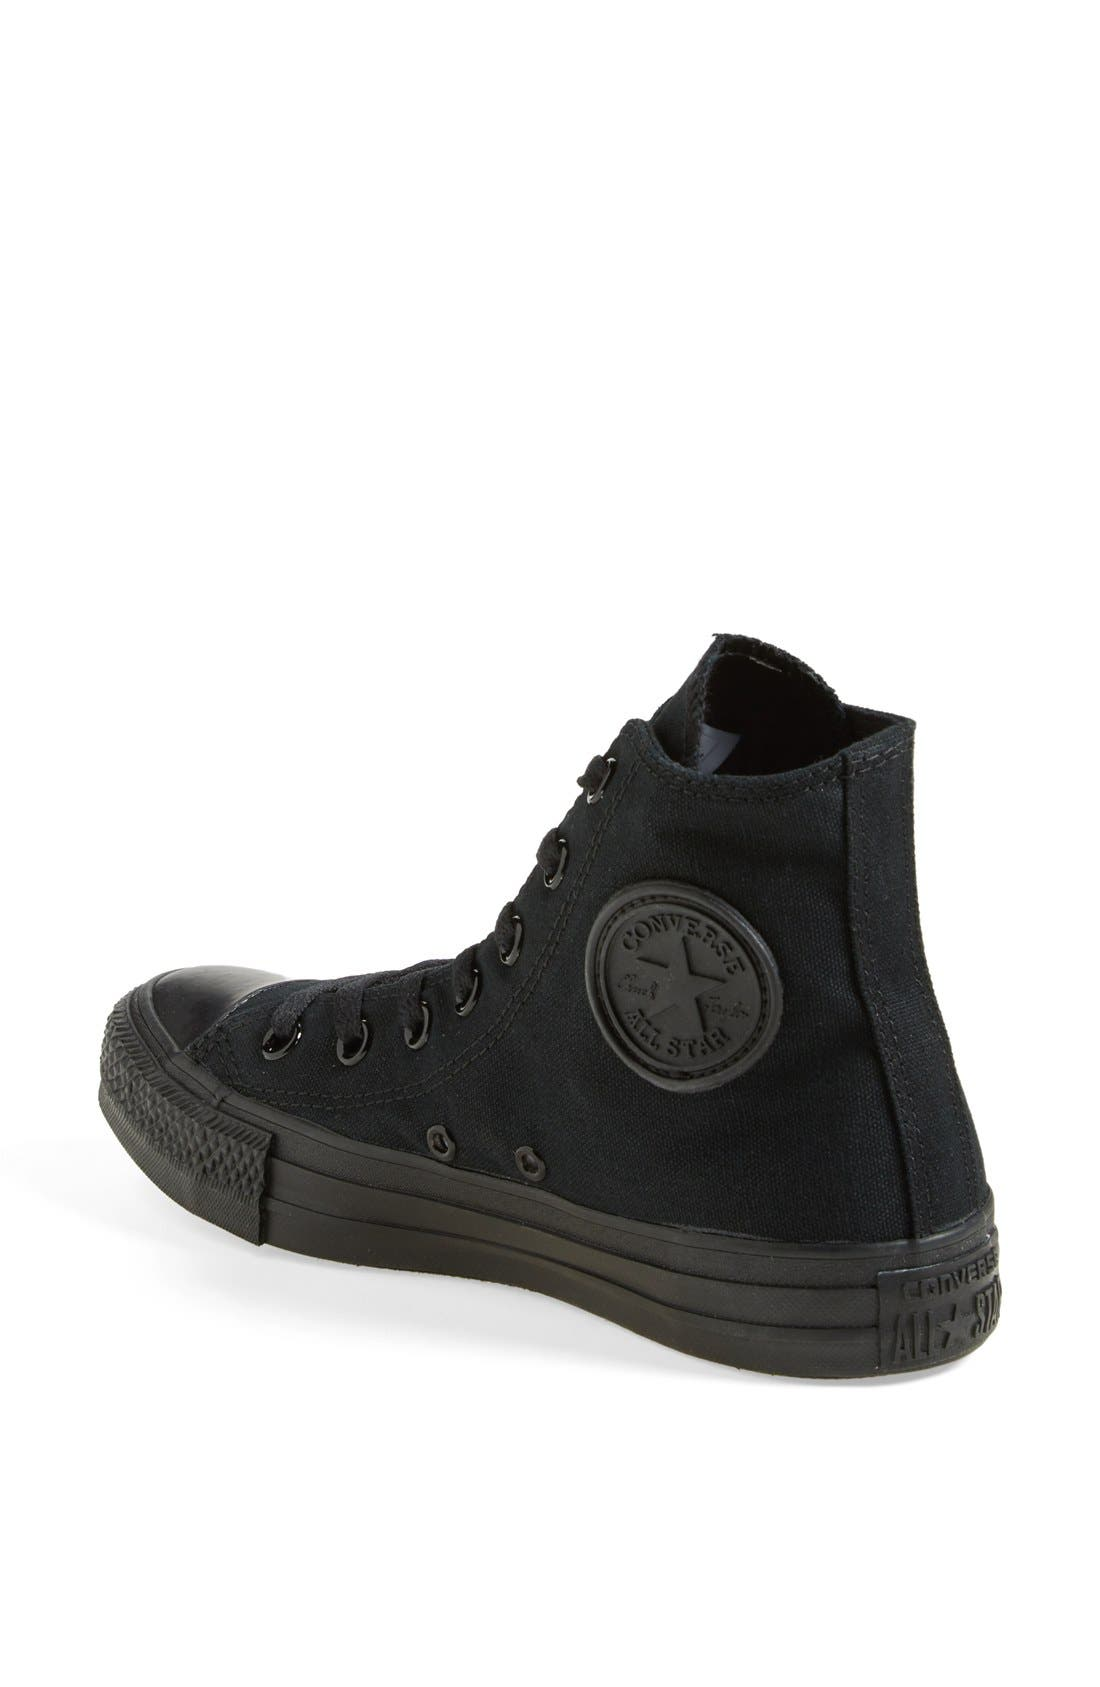 Chuck Taylor<sup>®</sup> All Star<sup>®</sup> High Top Sneaker,                             Alternate thumbnail 2, color,                             006